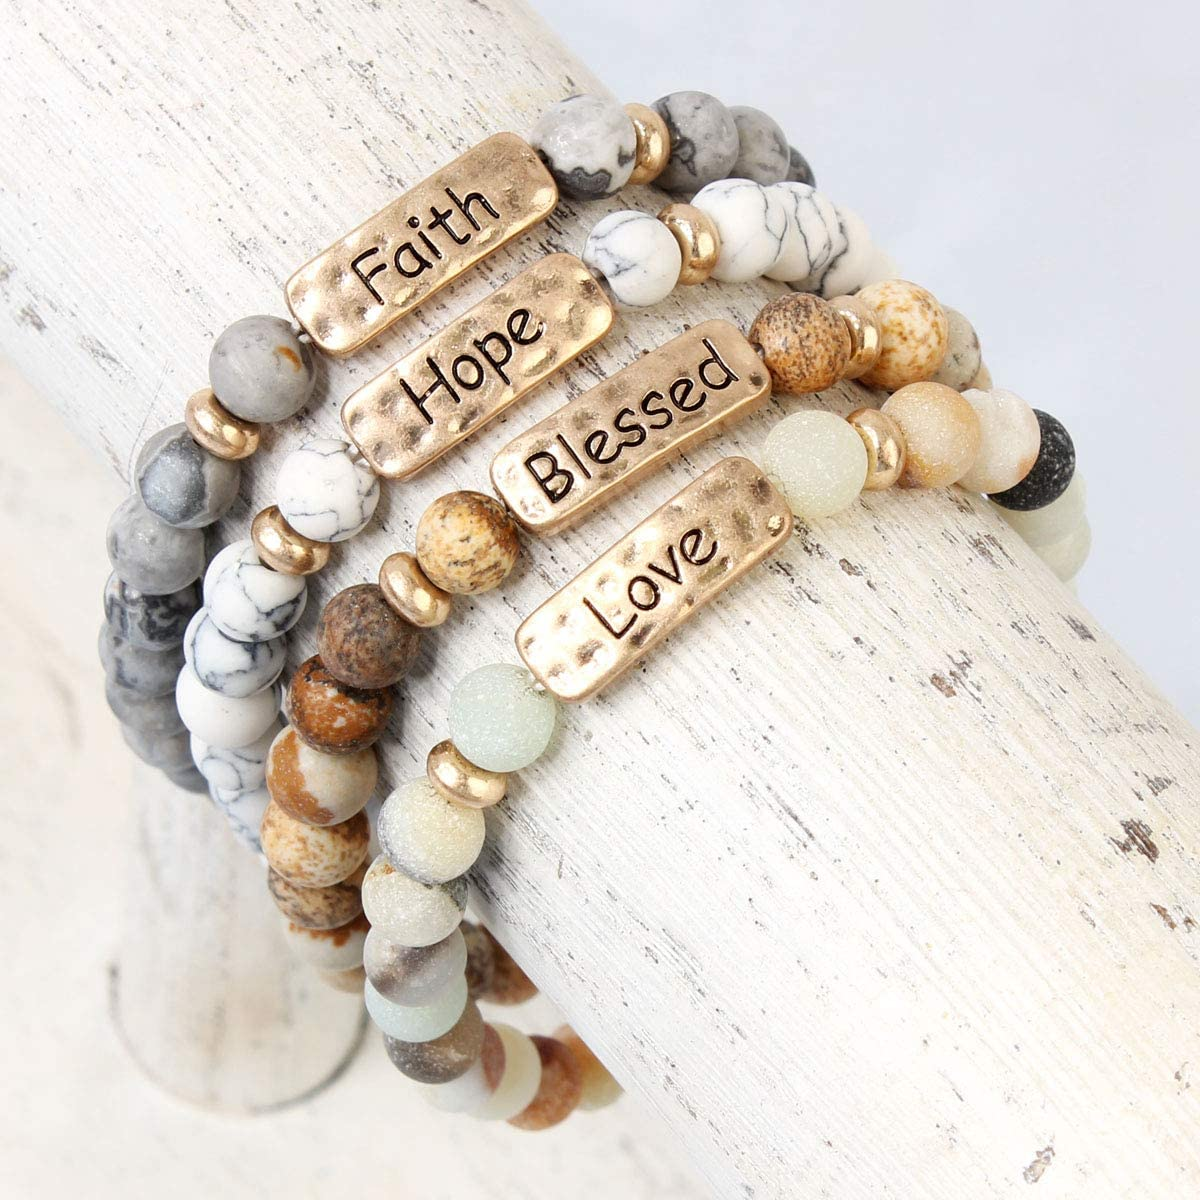 Inspirational Quote Message Prayer Beaded Bracelet - Christian Bible Cuff Blessed, Faith, Love, Hope Natural Stone Bead Stretch Bangle